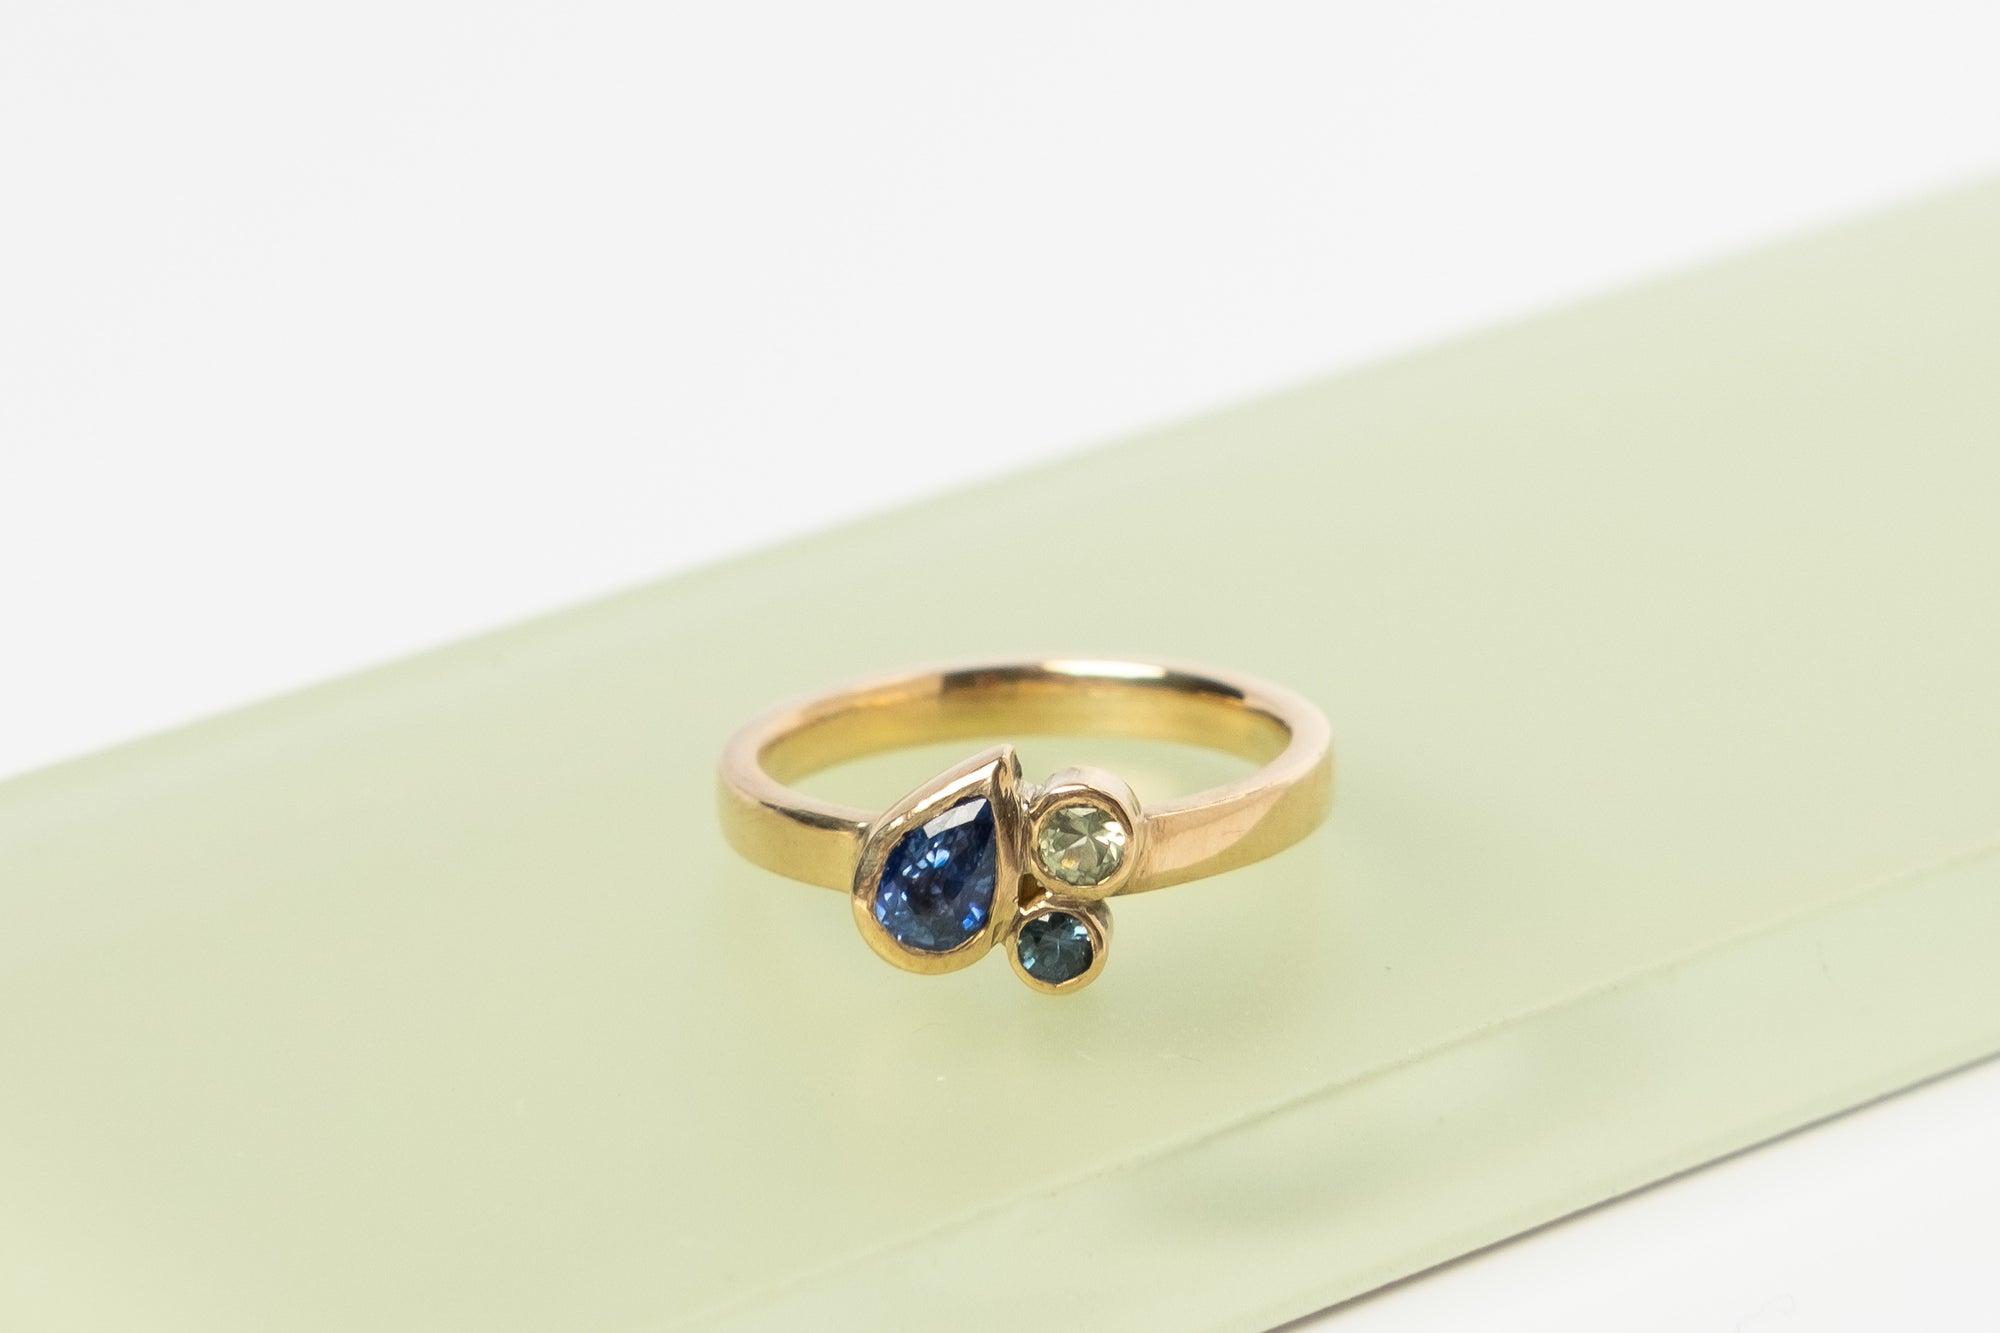 Gold ring with a cluster of bezel set sapphires including a blue pear cut and two smaller round sapphires - teal and green